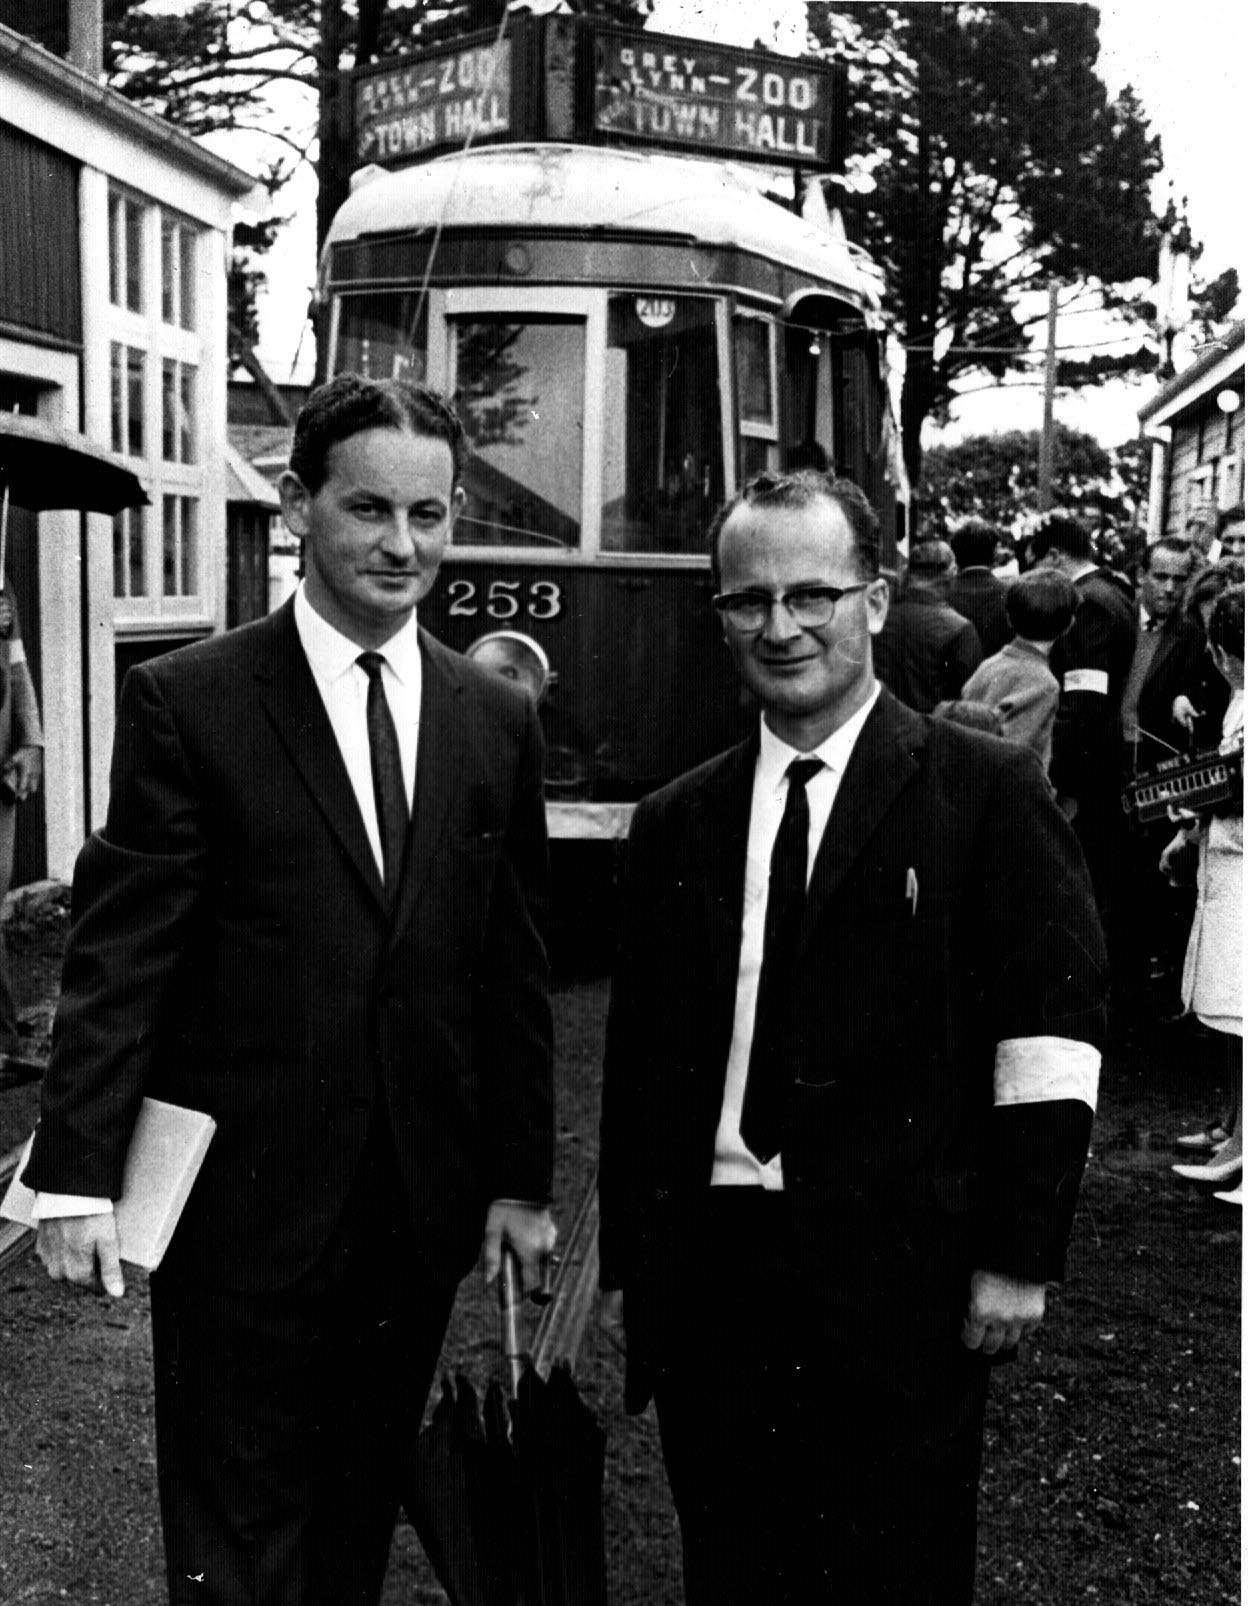 Graham and Ian Stewart - Western Springs Tramway Opening Day December 1967. Photographer unknown.